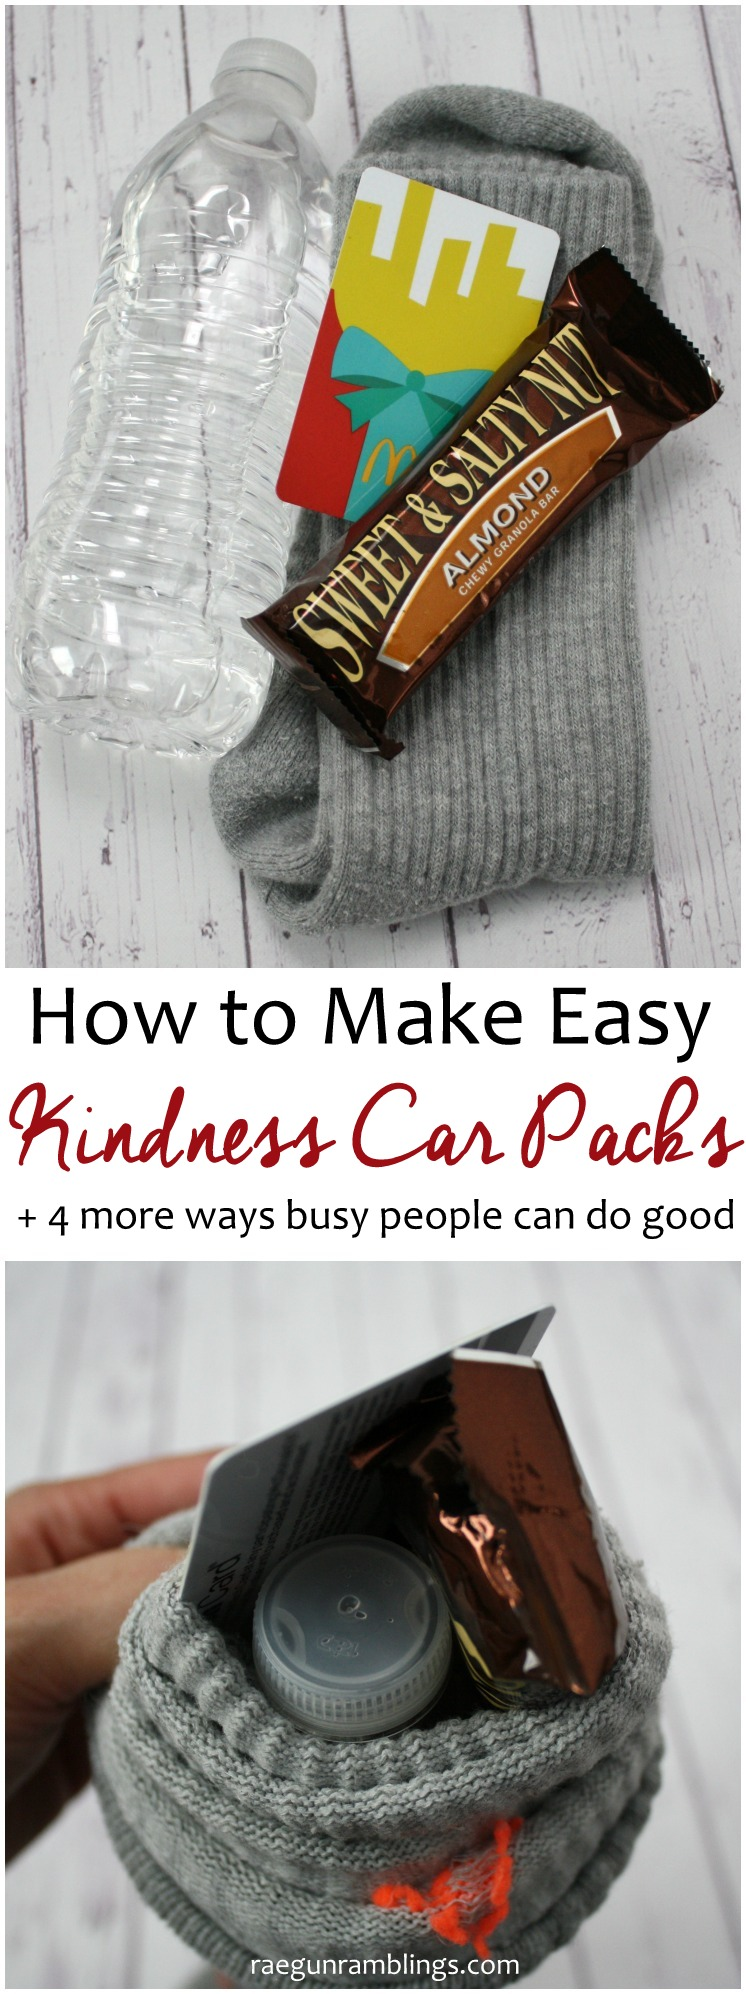 Love this idea to make kindness car parks to hand out to homeless people